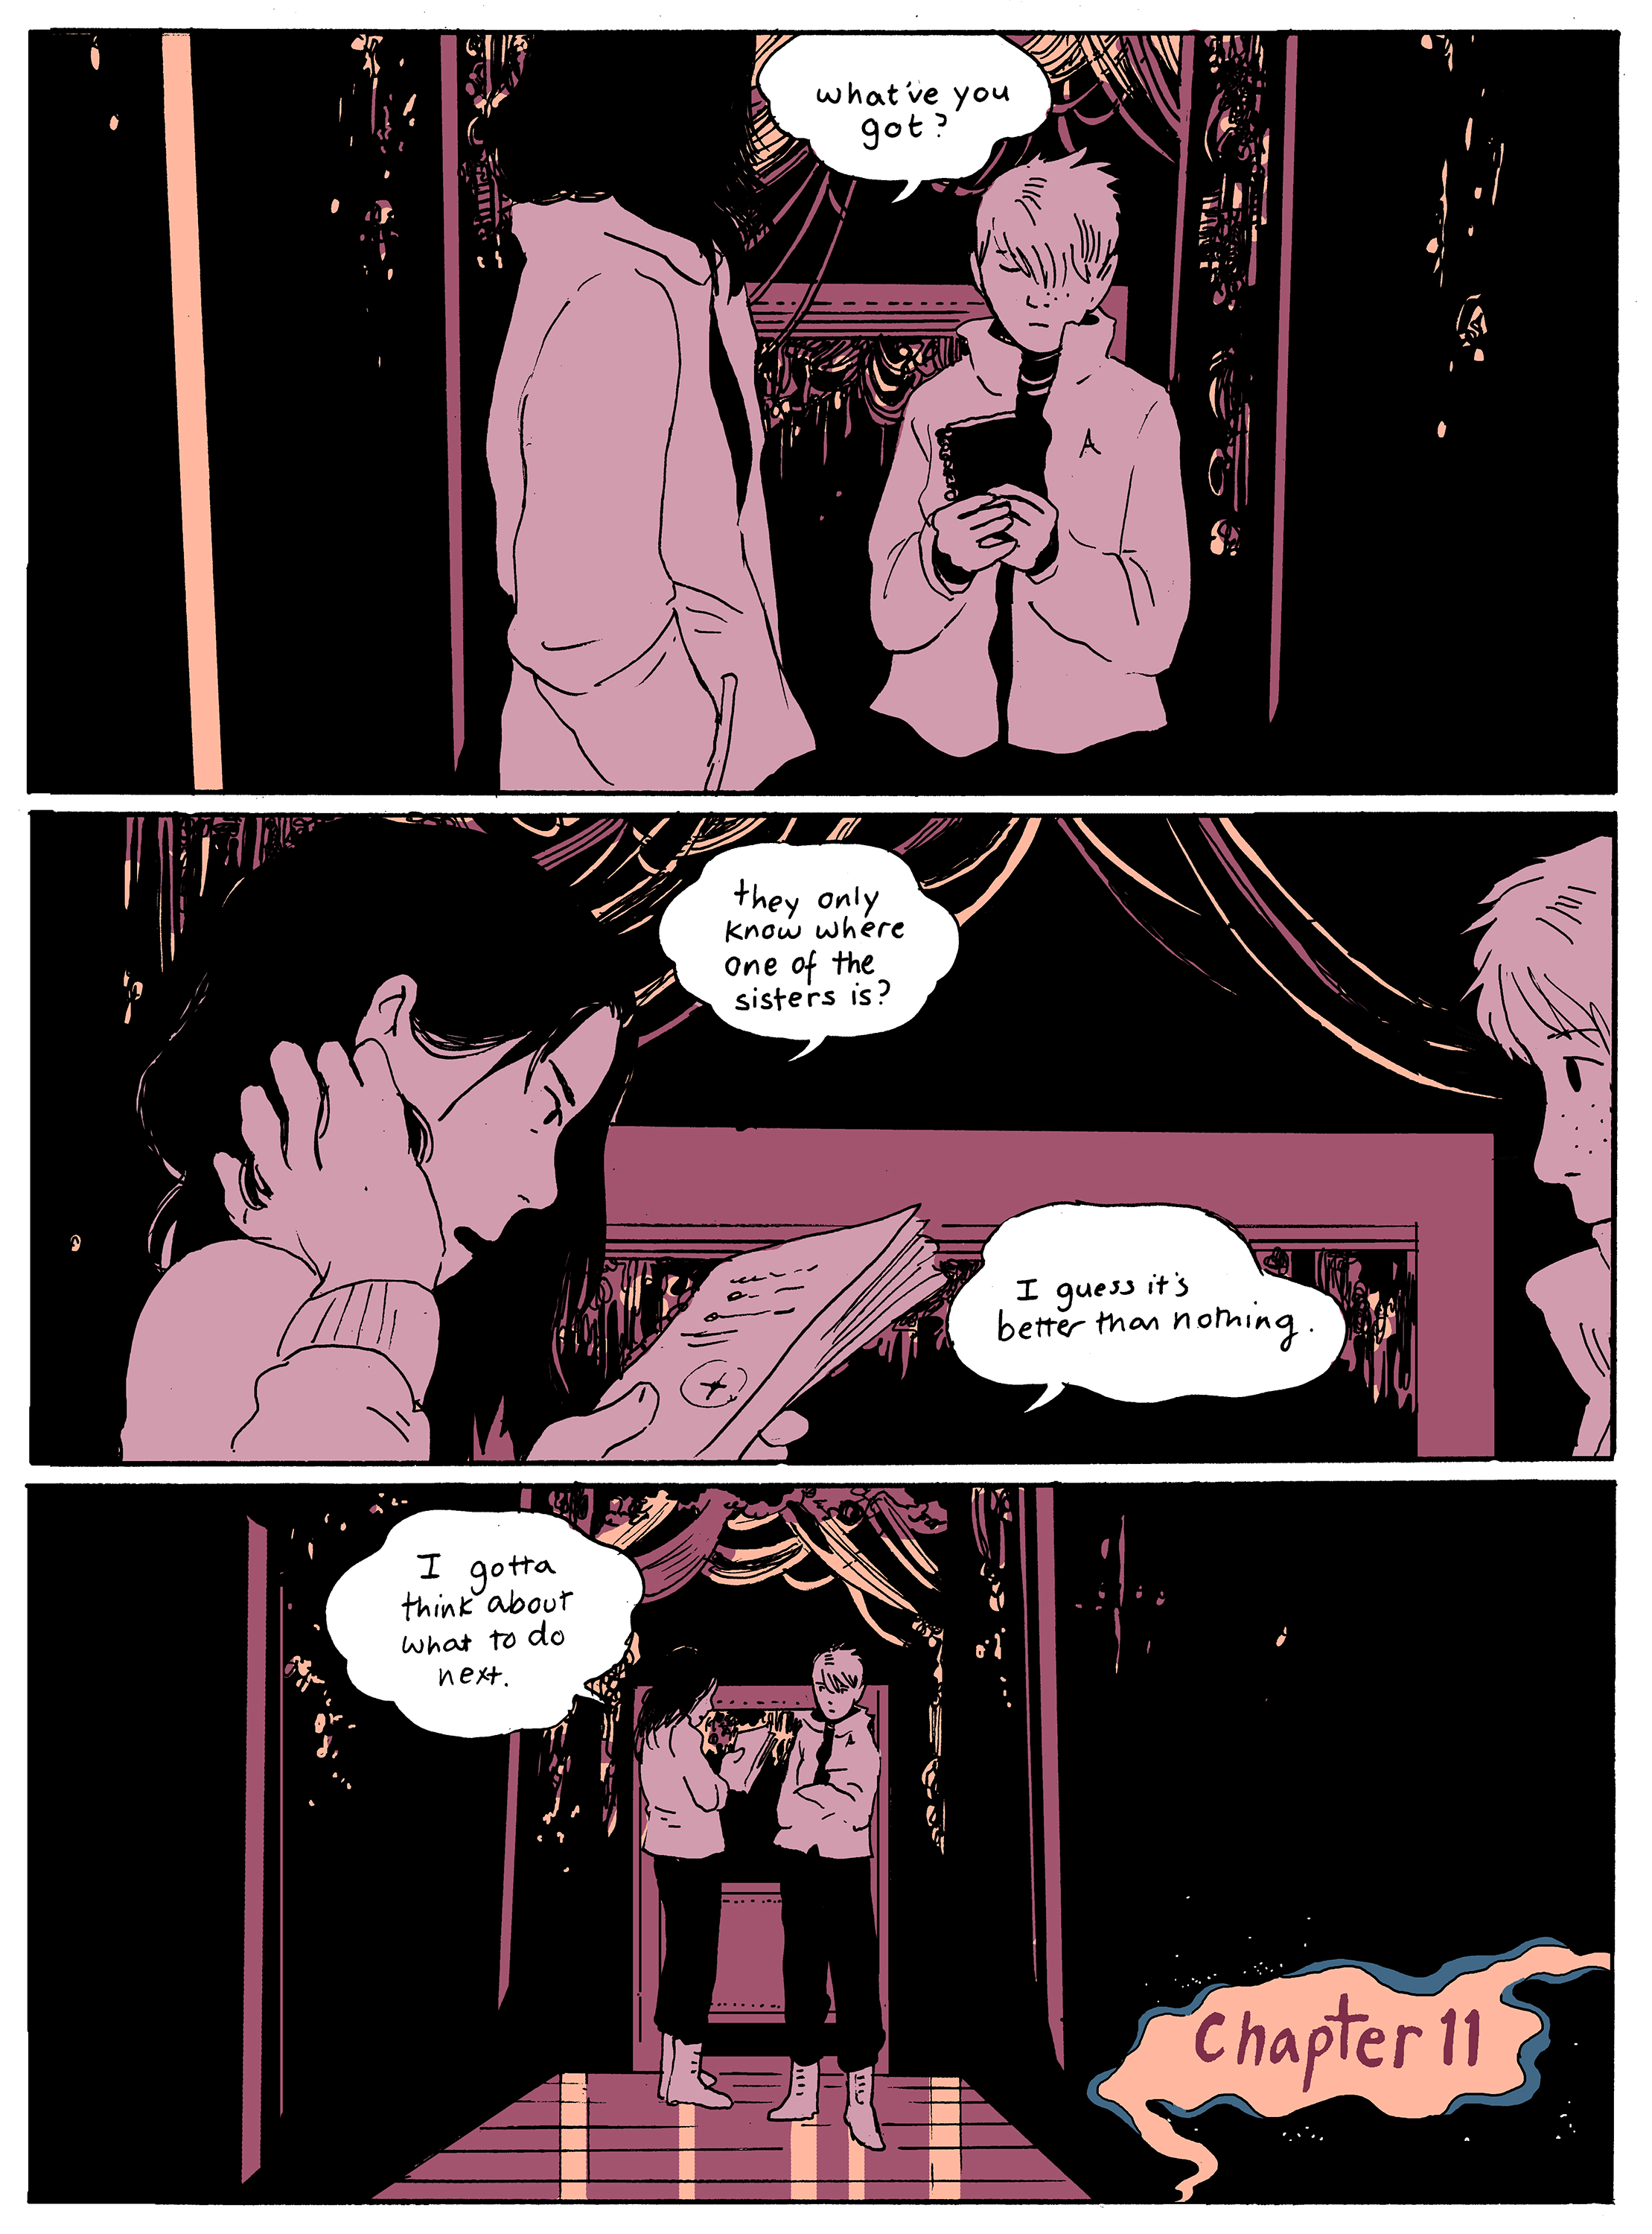 chapter11_page01.jpg